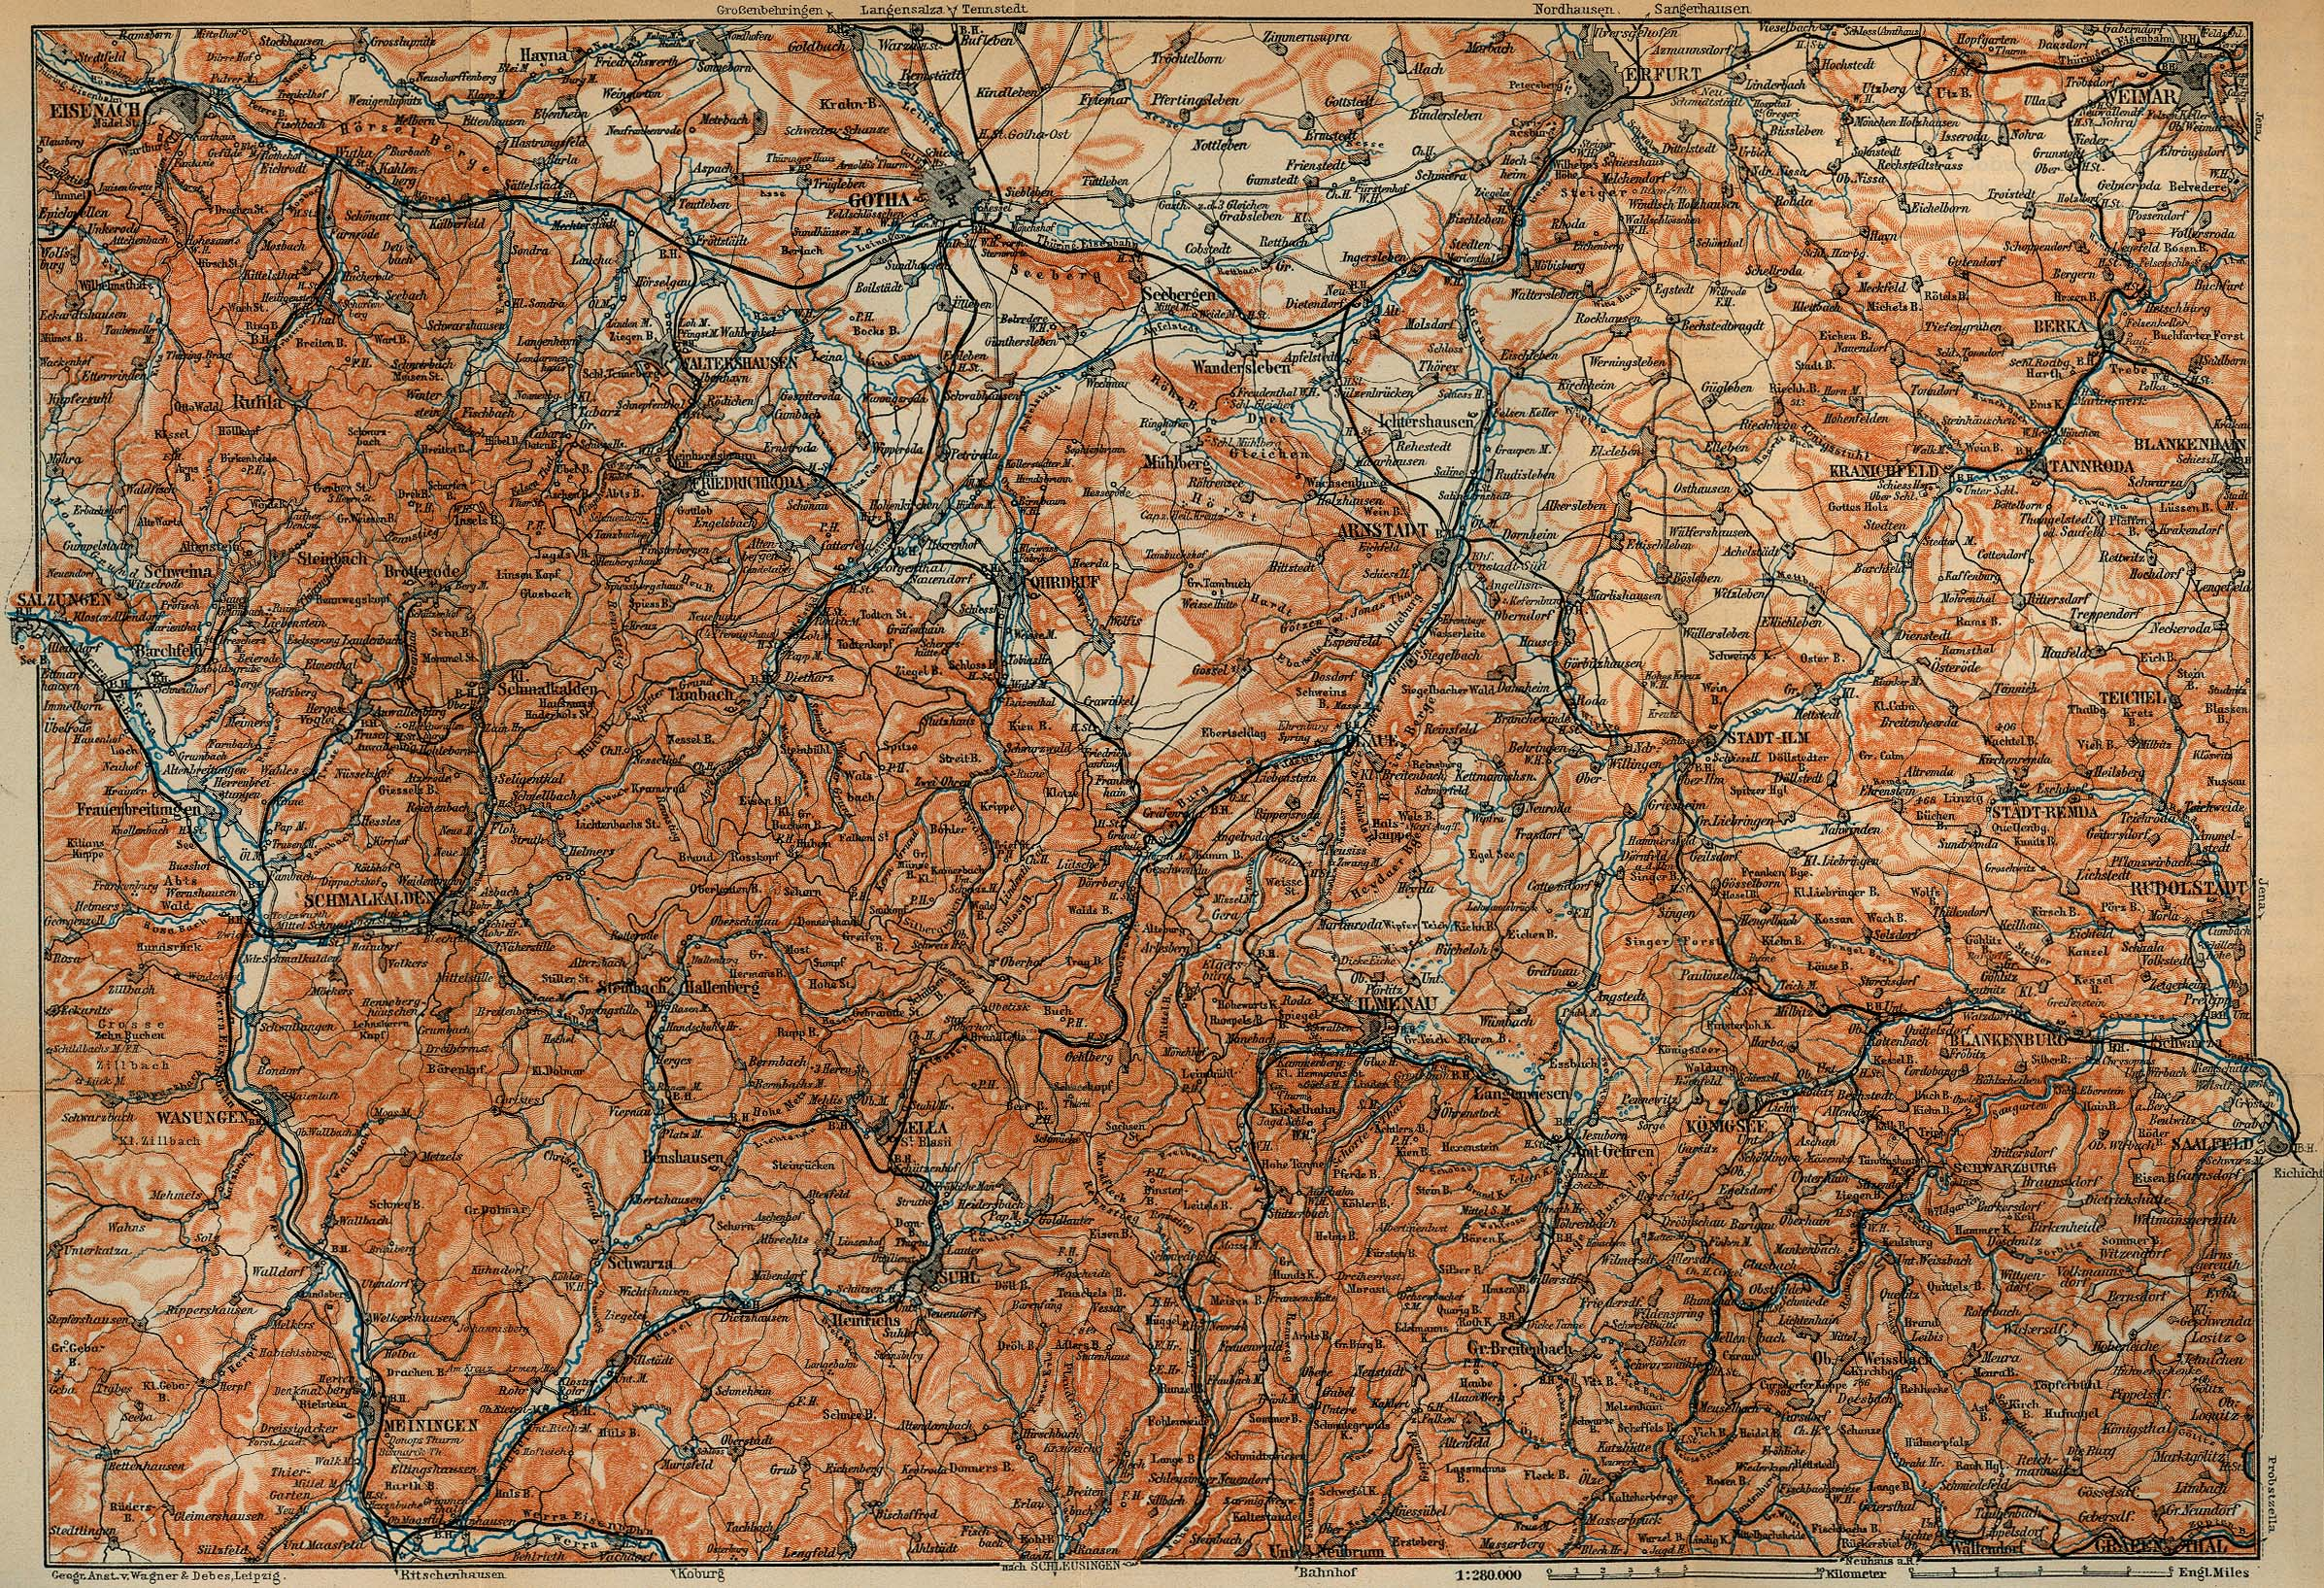 Thuringian Forest Survey Map, Germany 1910